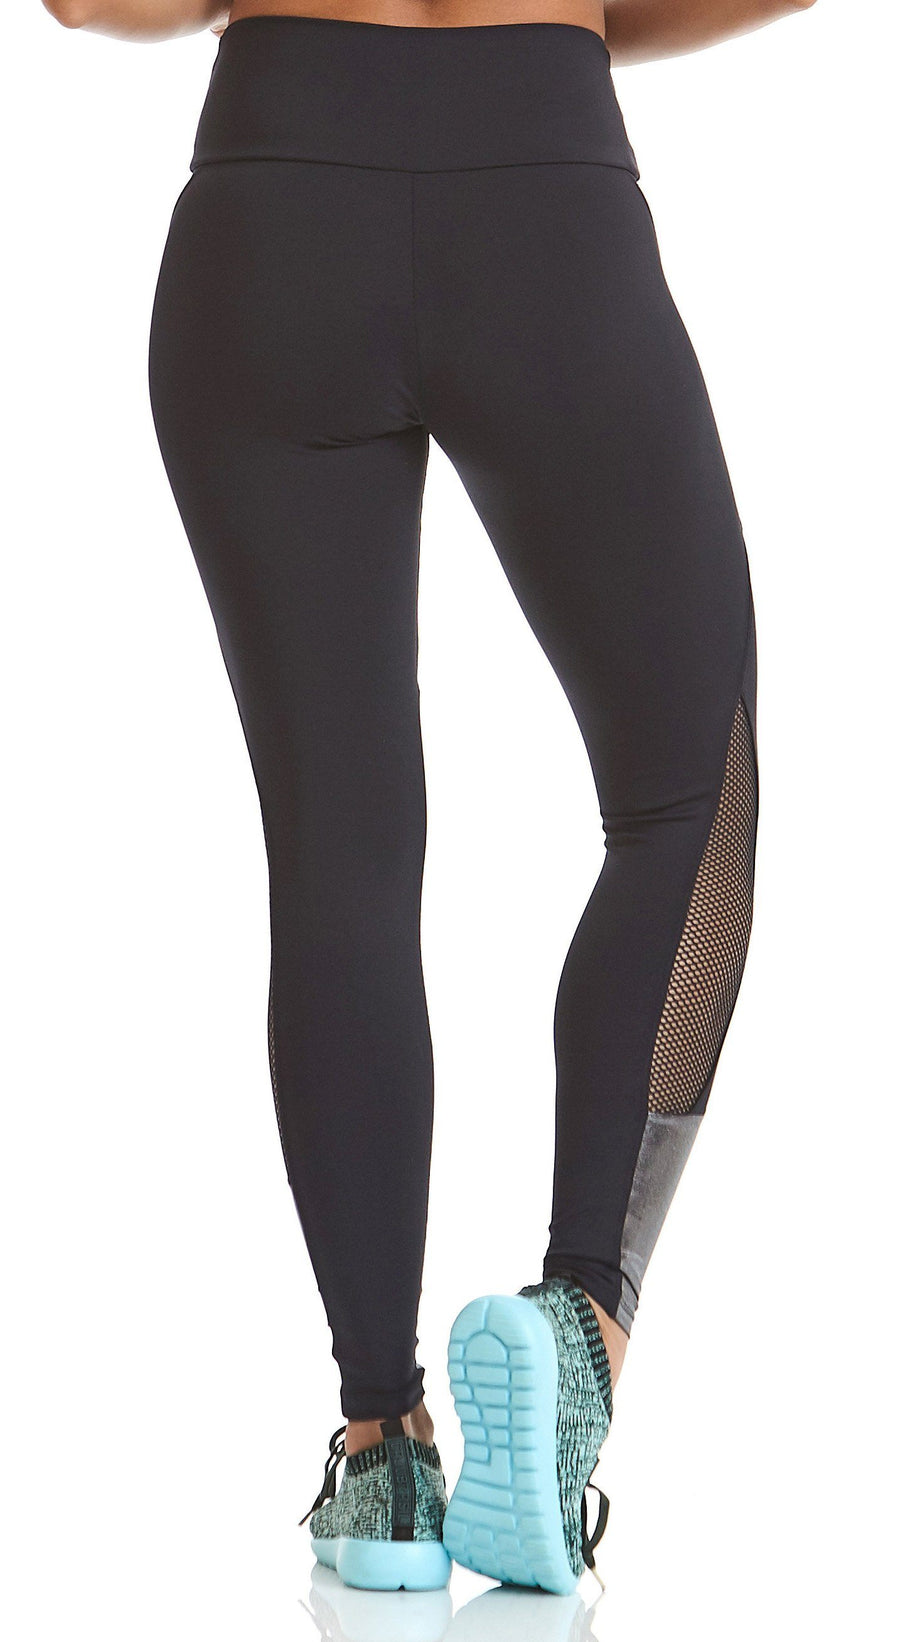 Brazilian Legging -  Mermaid  Compression Black